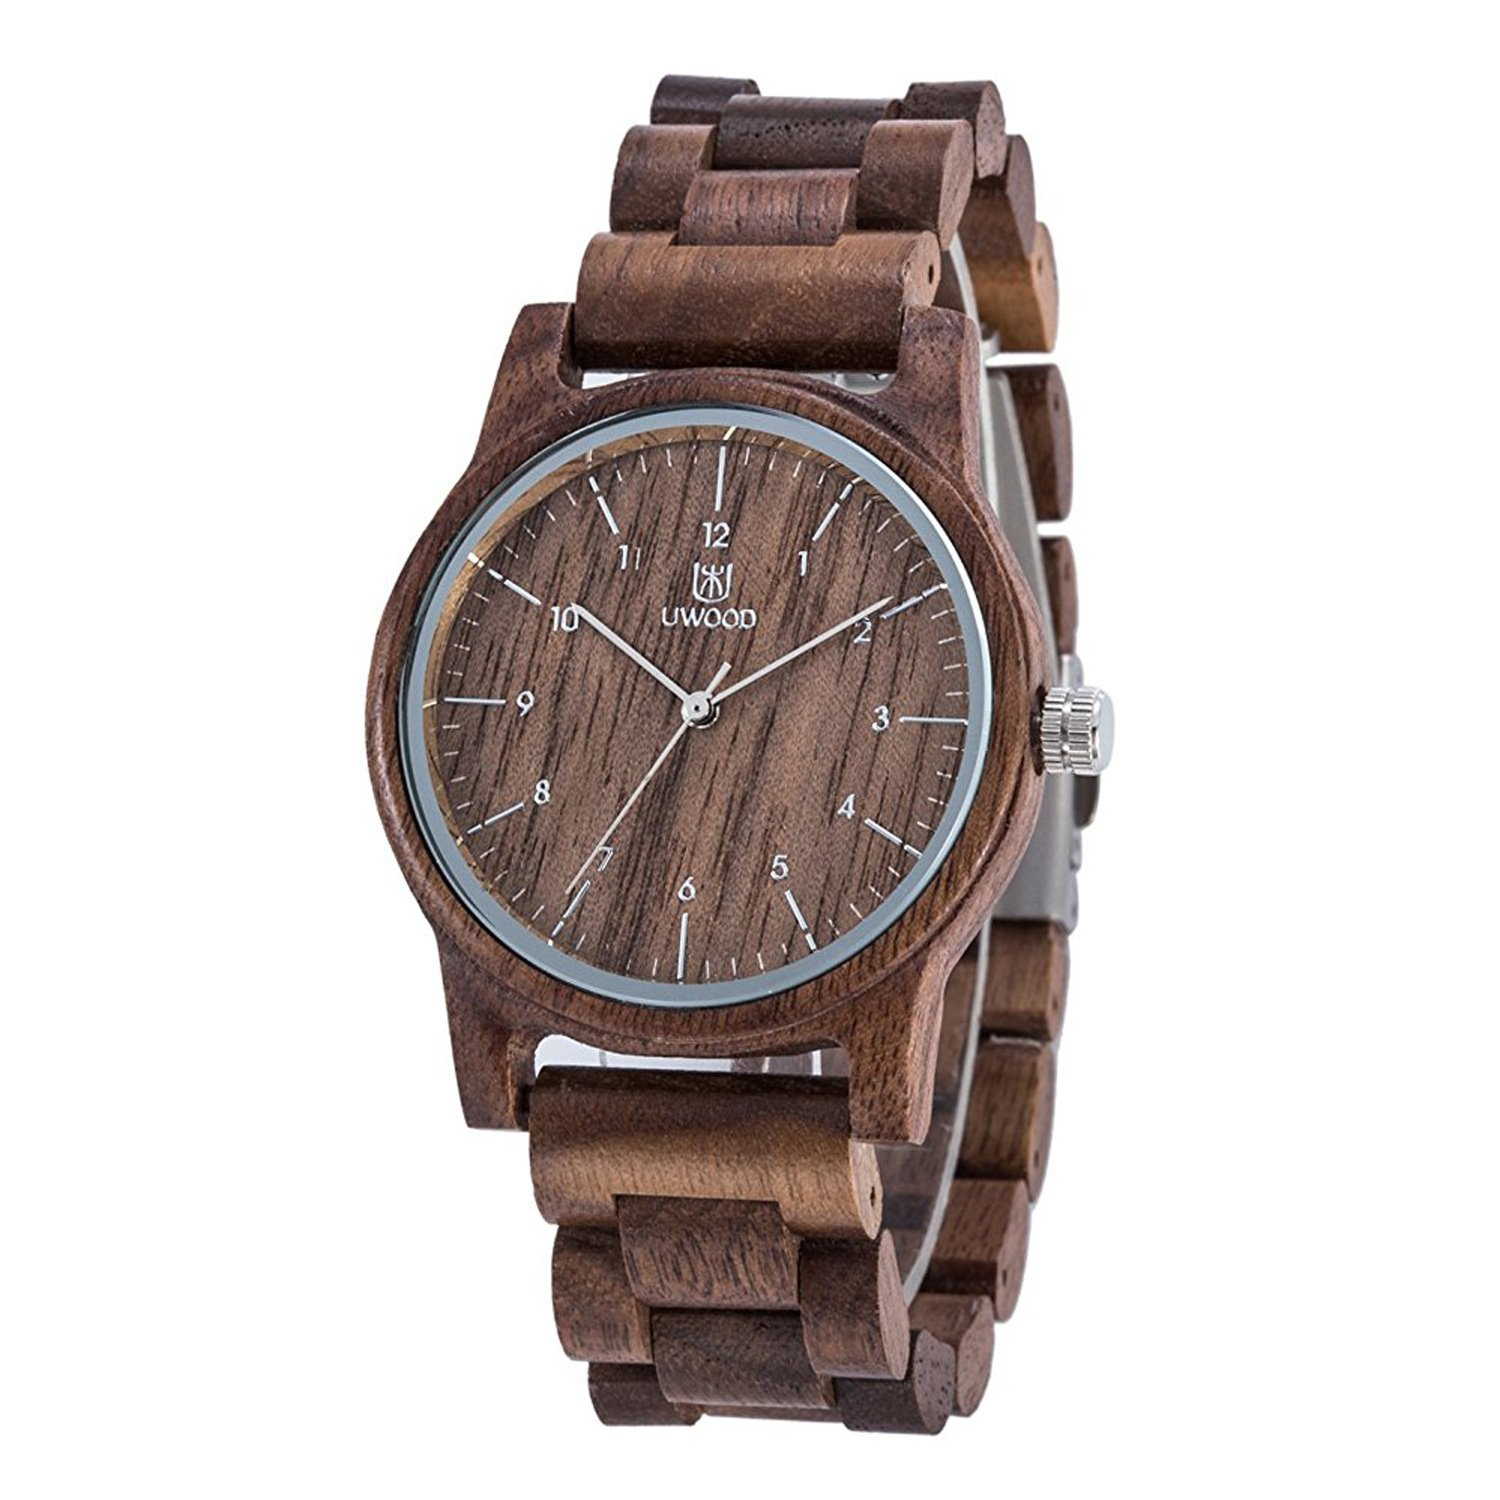 Men's Wooden Watch, NEWBETTER Handmade Vintage Quartz Watches, Natural Wooden Wrist Watch (Brown Walnut wood)